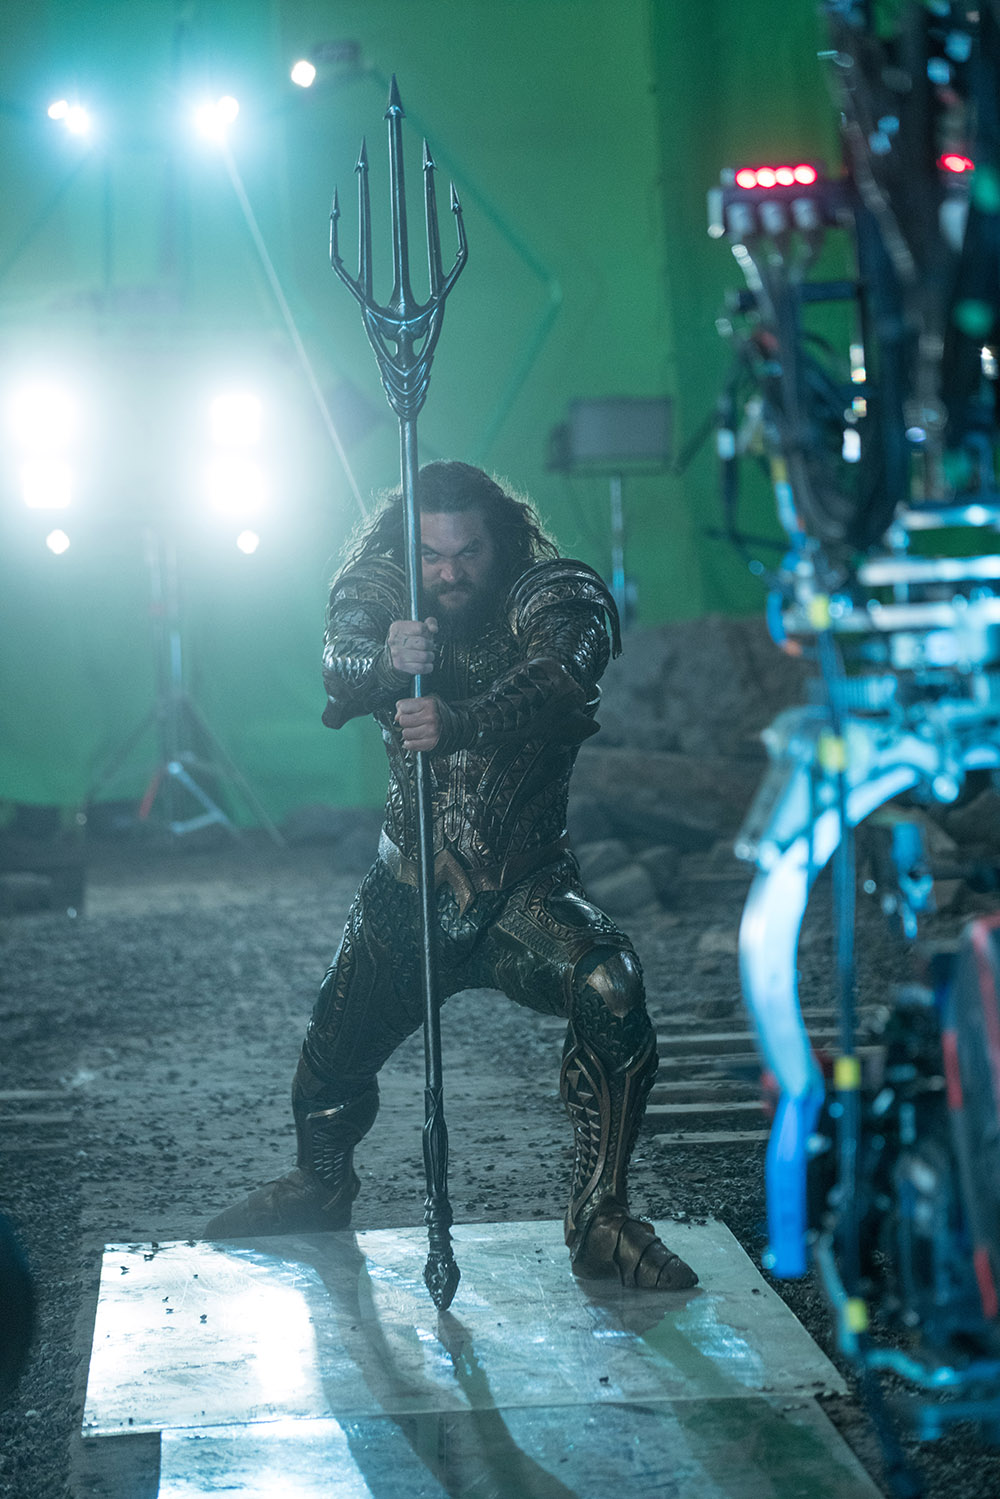 Jason Momoa as Aquaman on the set of Justice League